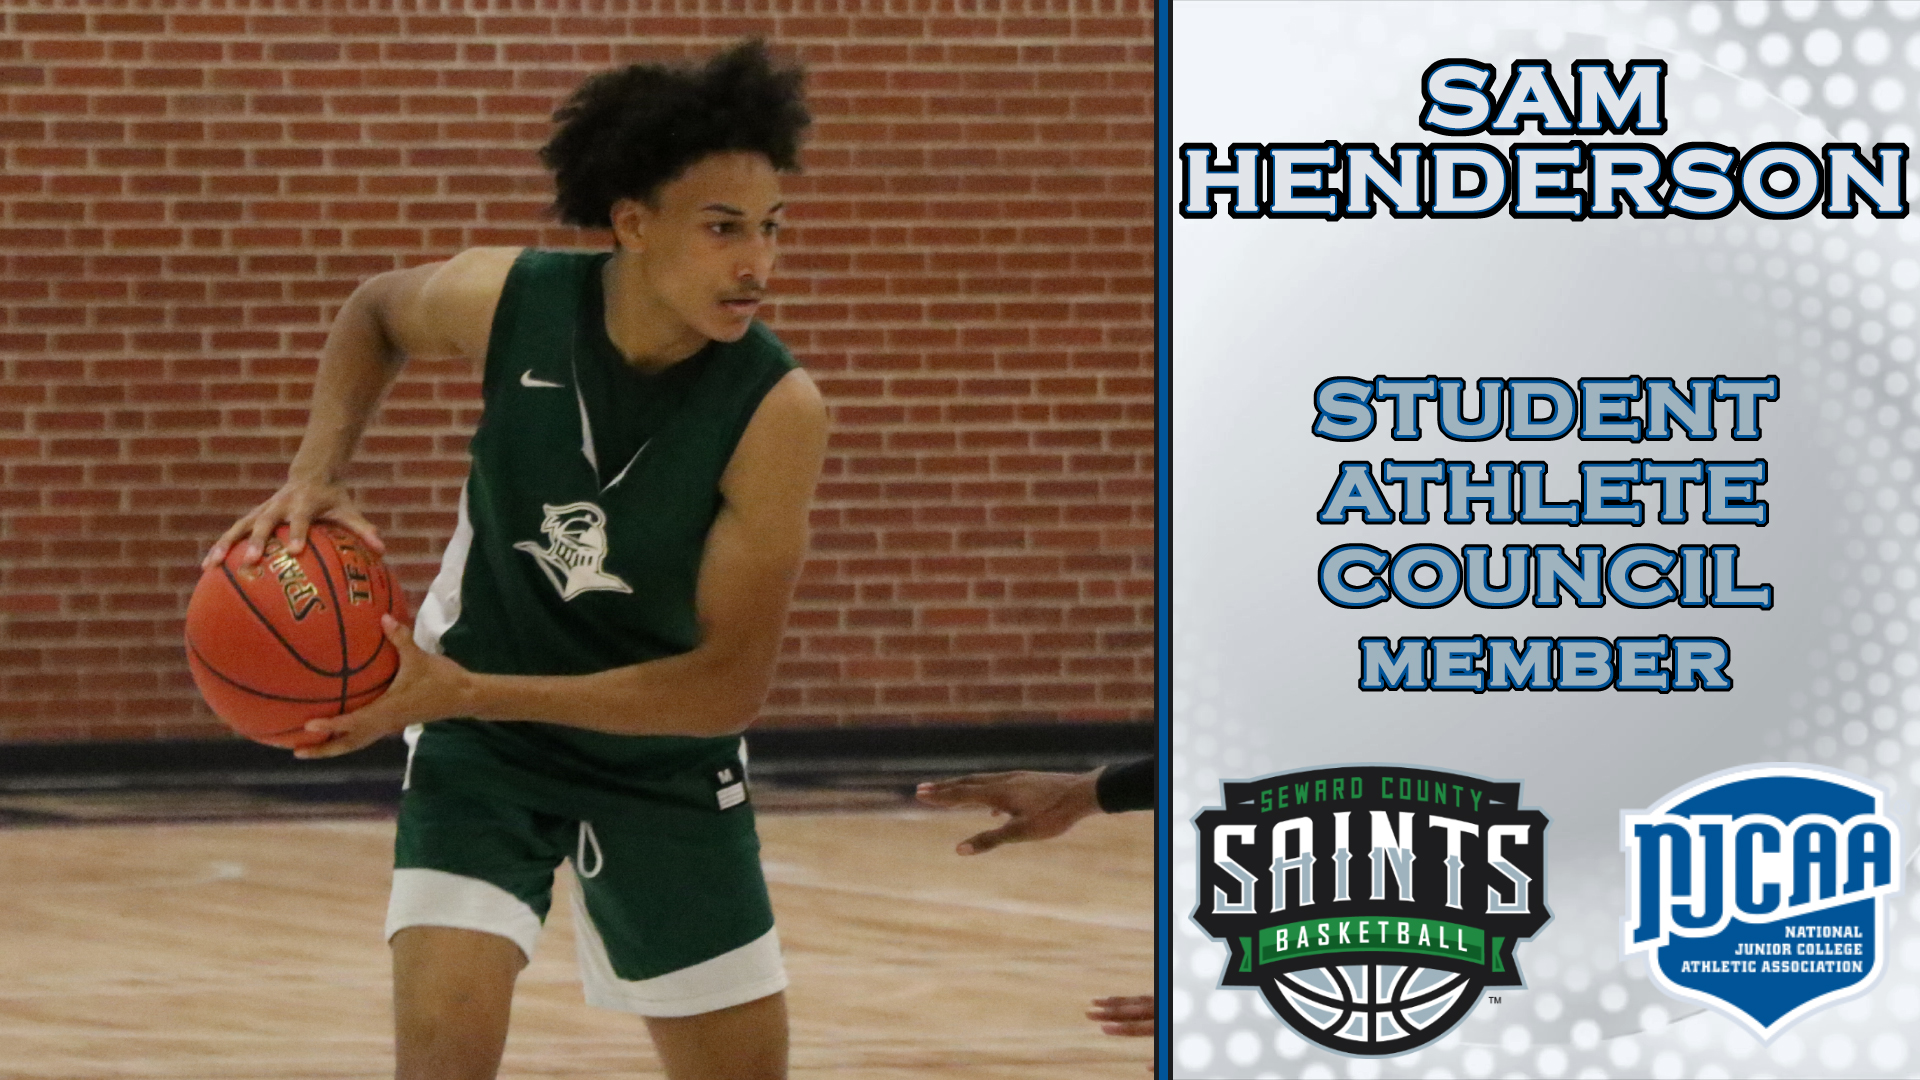 Seward's Henderson Joins NJCAA Student-Athlete Council